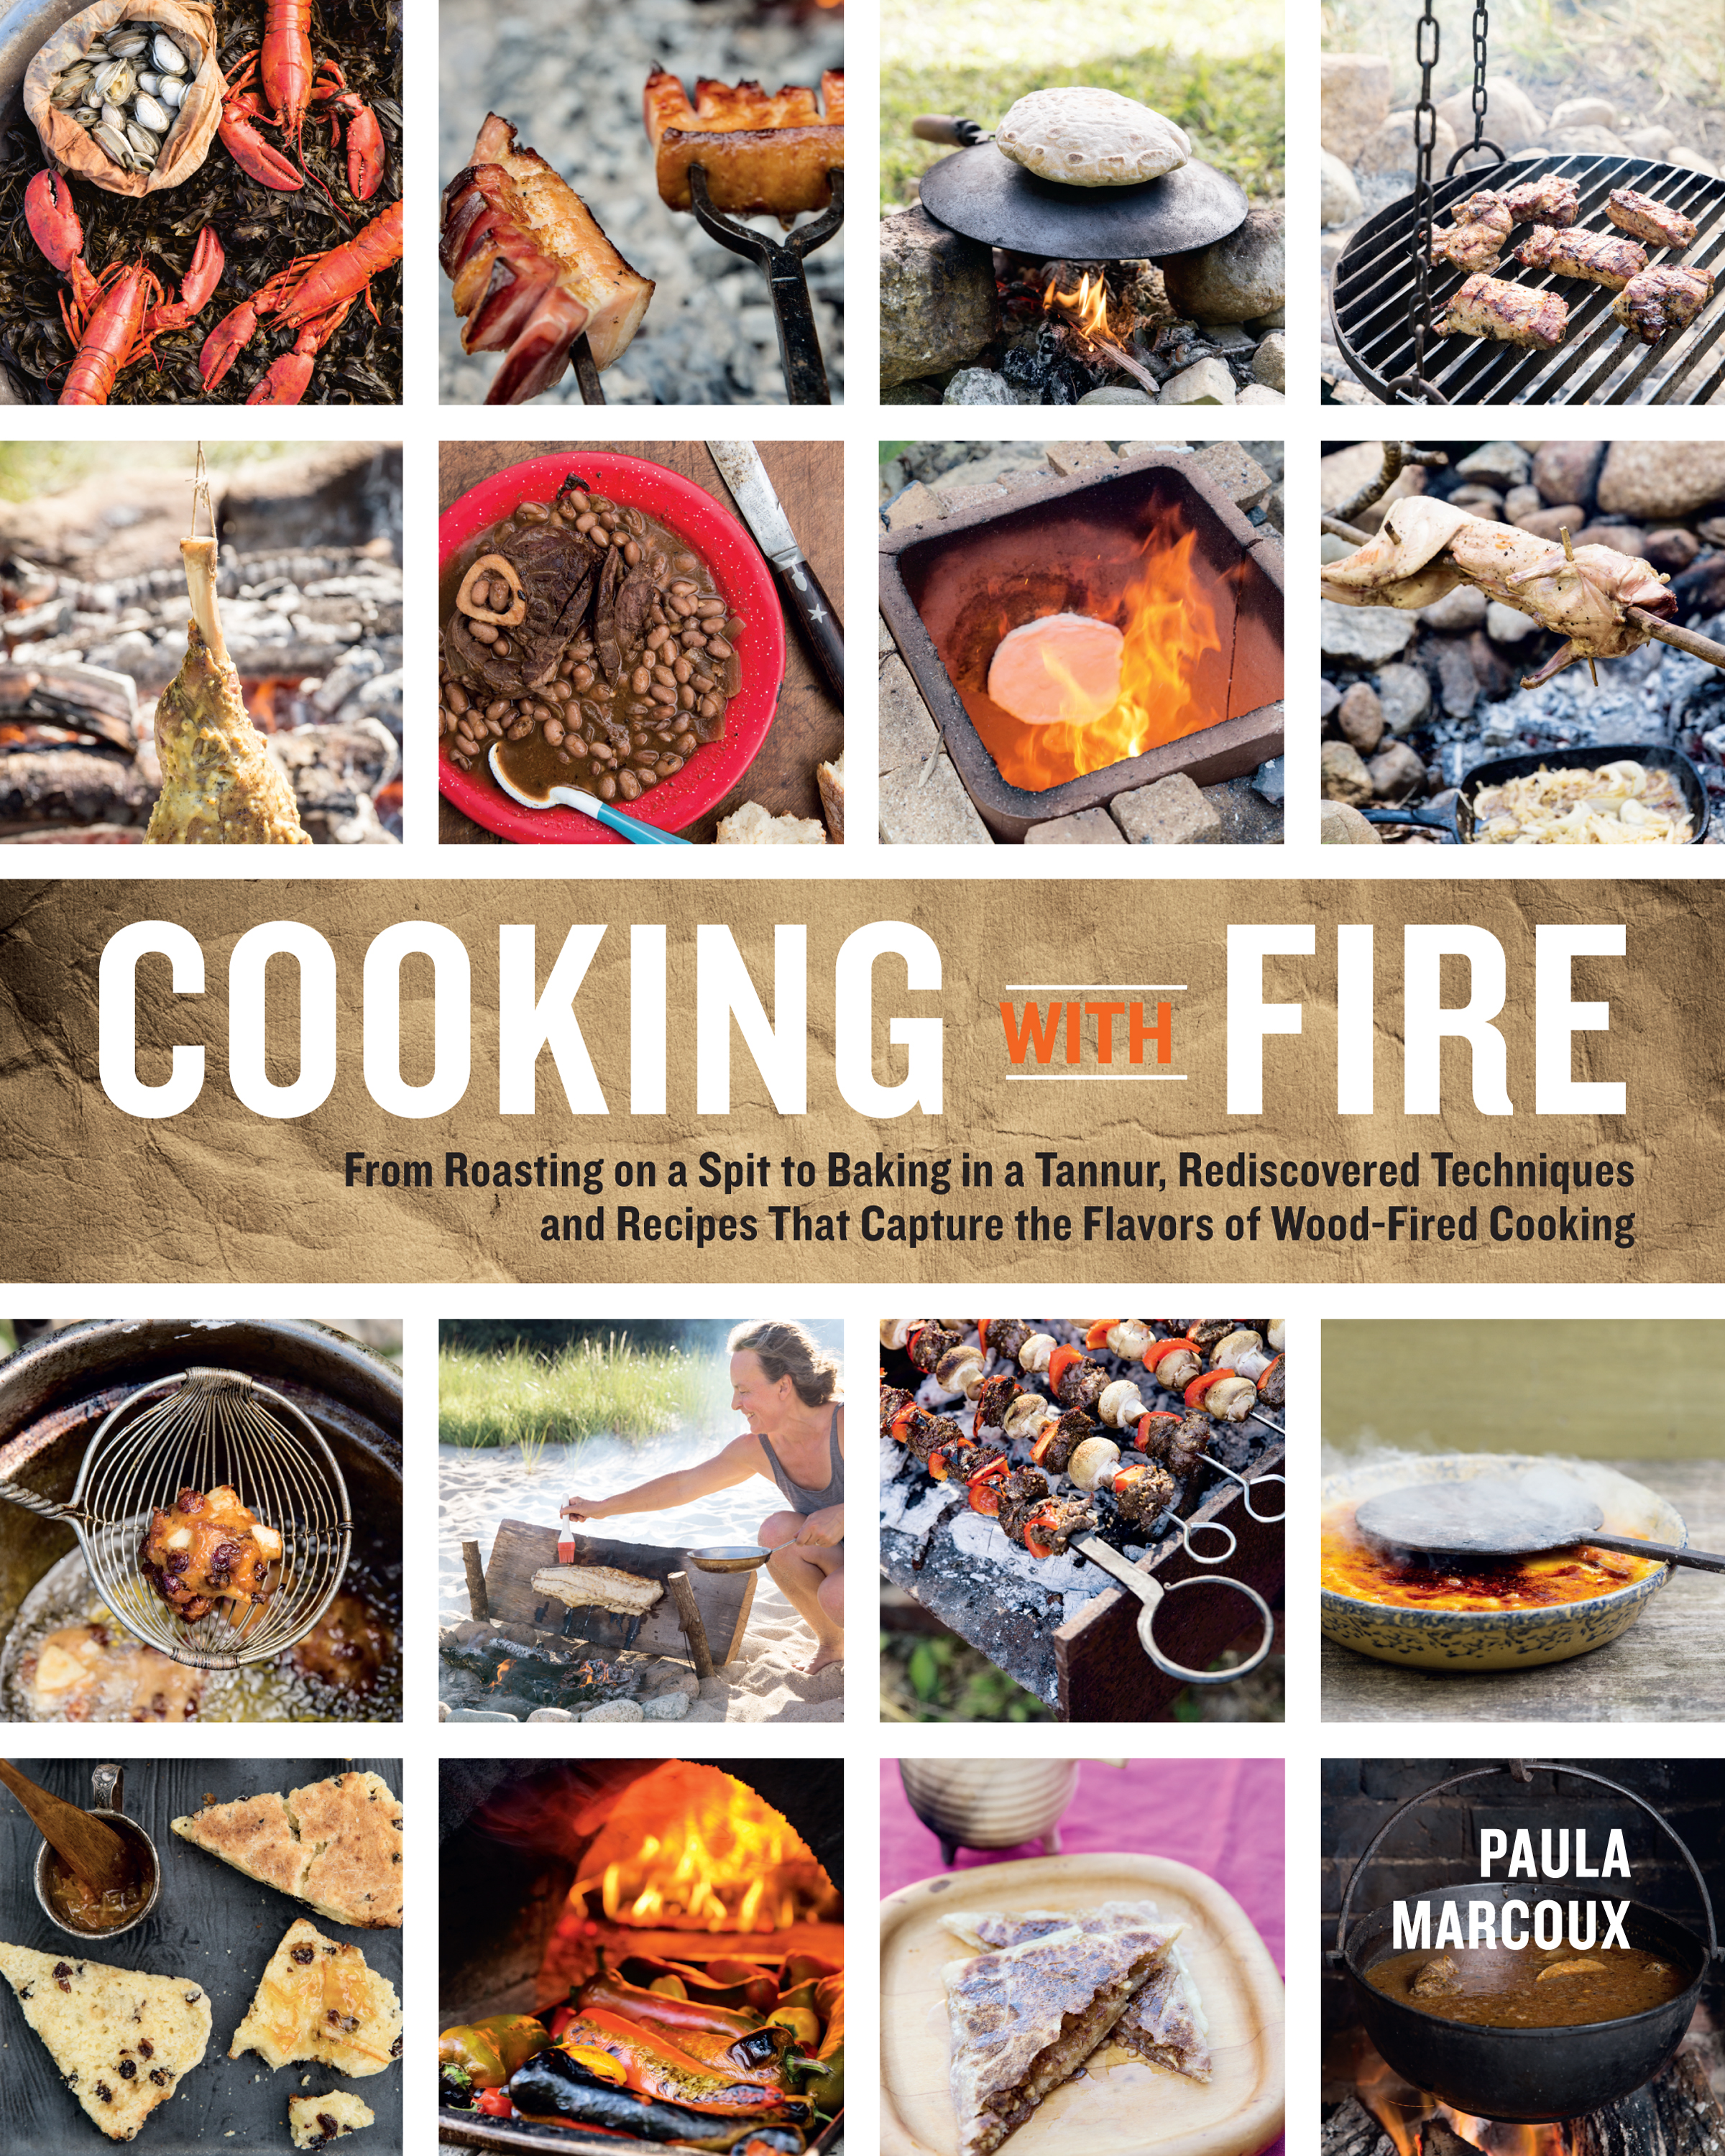 Cooking with Fire From Roasting on a Spit to Baking in a Tannur, Rediscovered Techniques and Recipes That Capture the Flavors of Wood-Fired Cooking - Paula Marcoux